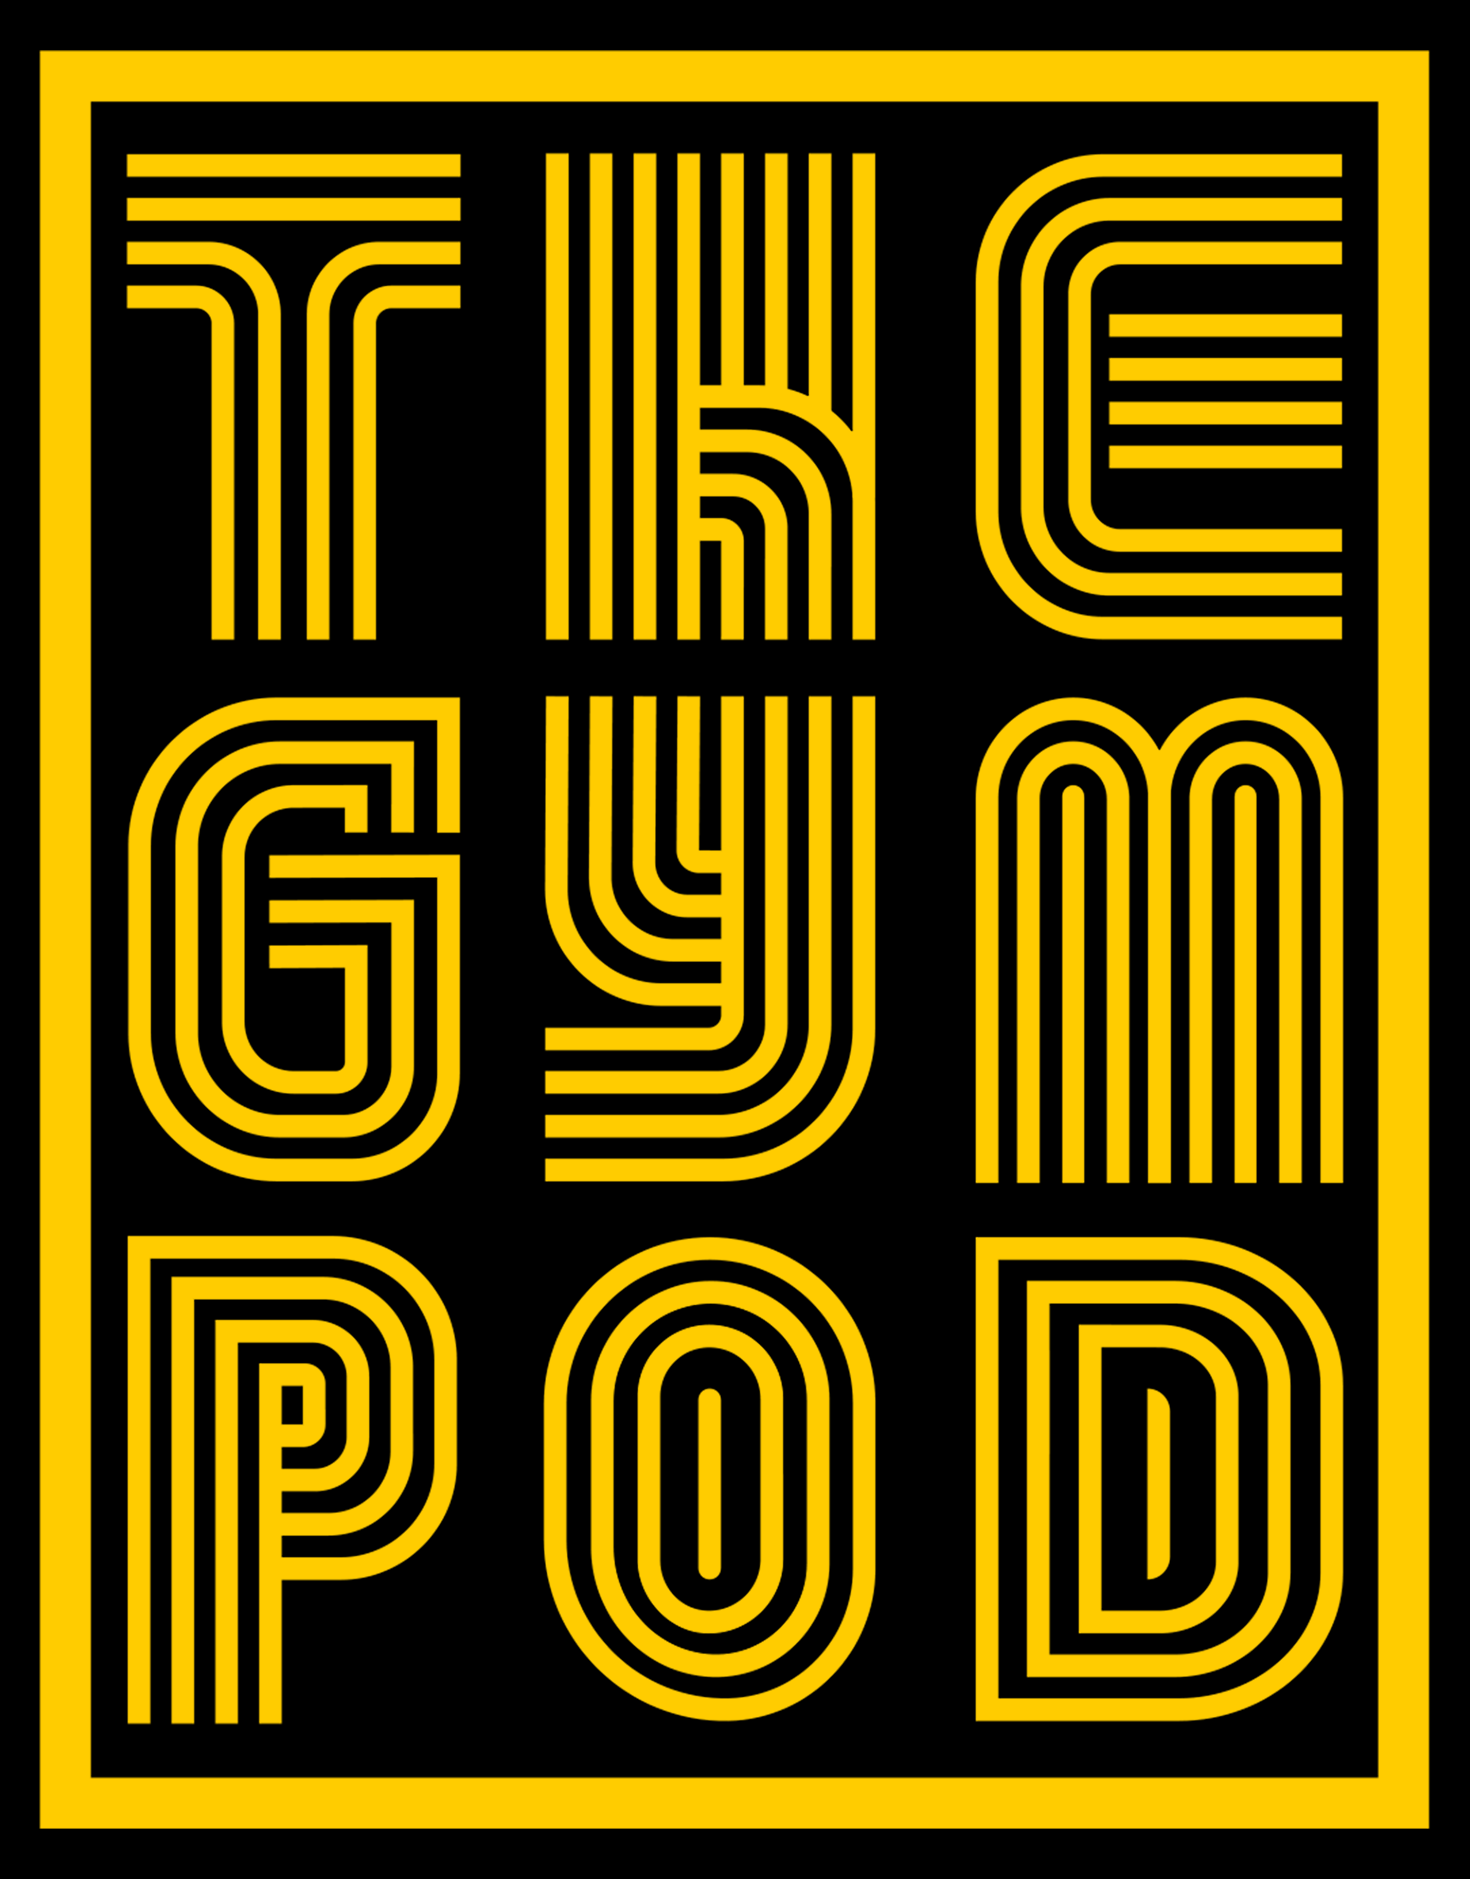 The Gym Pod is hiring on Meet.jobs!